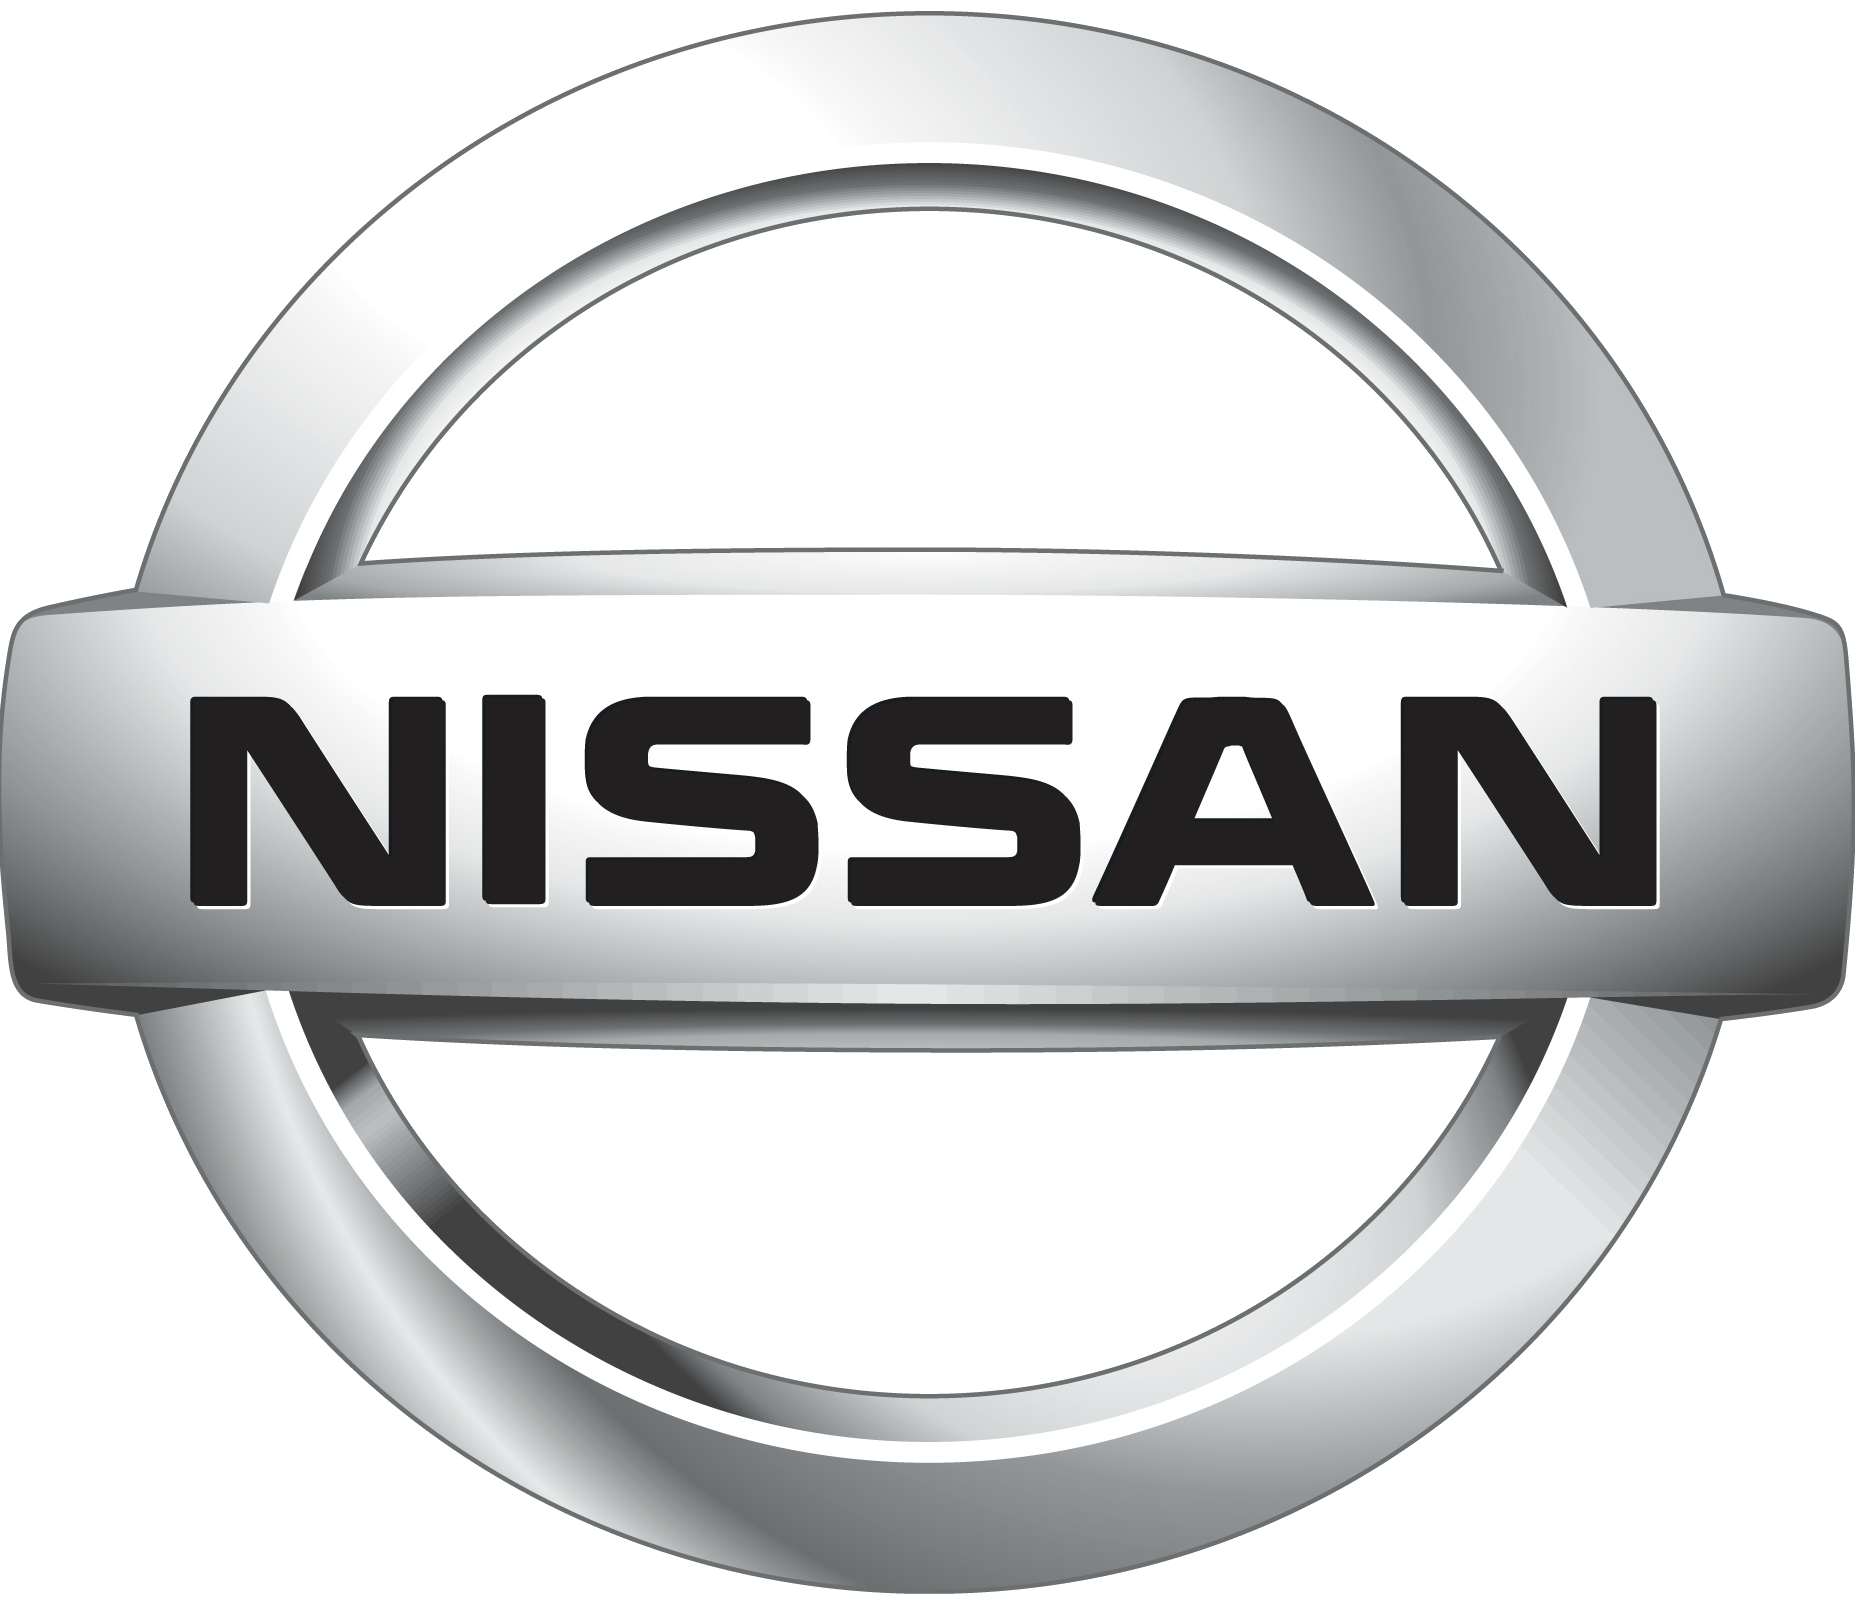 Nissan logo nissan car symbol meaning and history car brand nissan logo buycottarizona Gallery